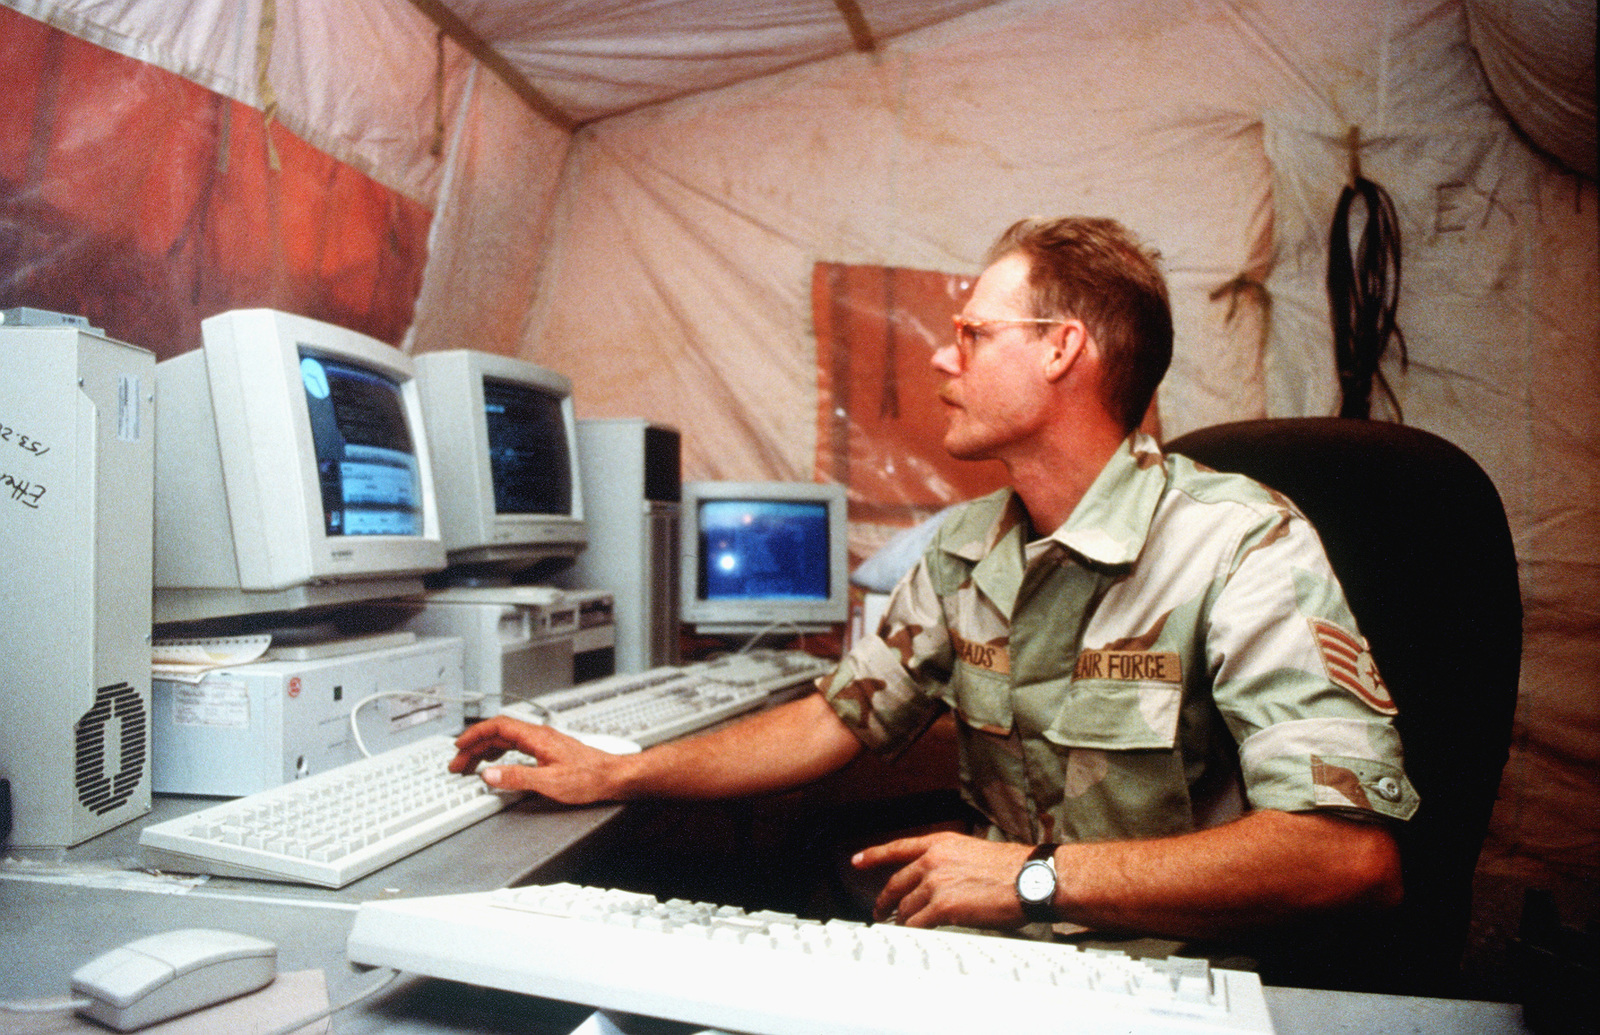 STAFF Sergeant Larry Gerads, a Computer Communications Technician, 38th Engineering and Installation Wing, Tinker Air Force Base, Oklahoma, works on the Deployed Local Area Network or DLAN, a computer service for Prince Sultan Air Base. Sergeant Gerads is providing communications support during the relocation of the 4404th Wing (Provisional) from Dhahran after a terrorist bomb attack killed 19 Air Force personnel